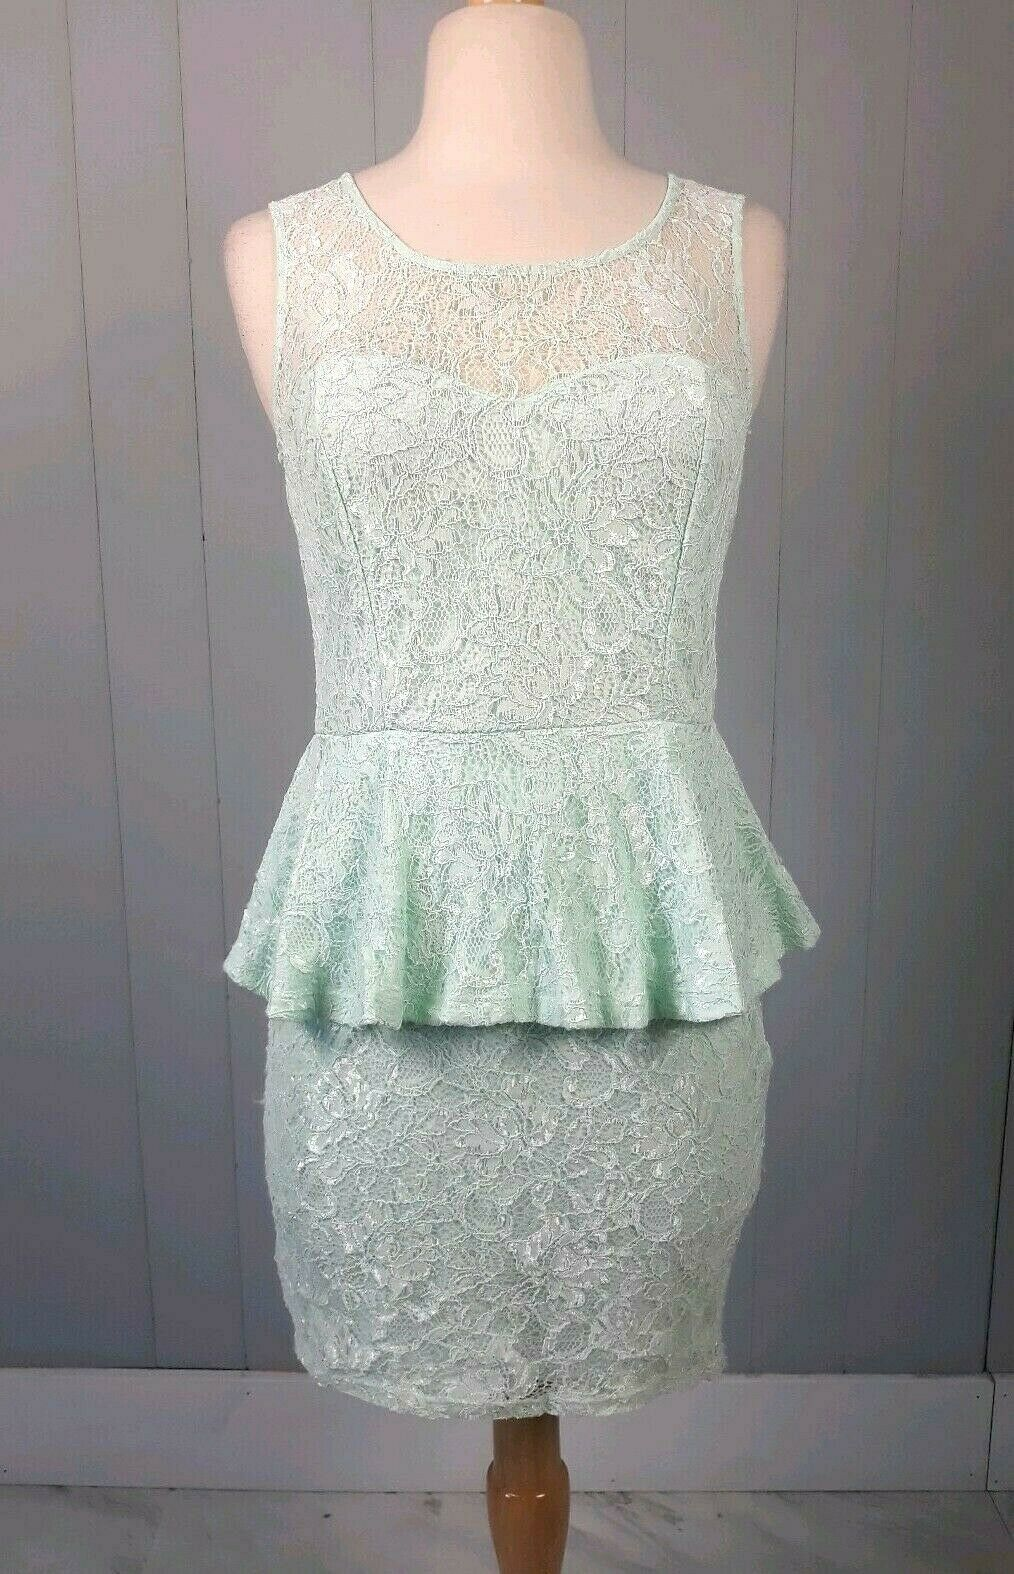 Forever 21 Seafoam Green Lace Peplum Dress Size Medium